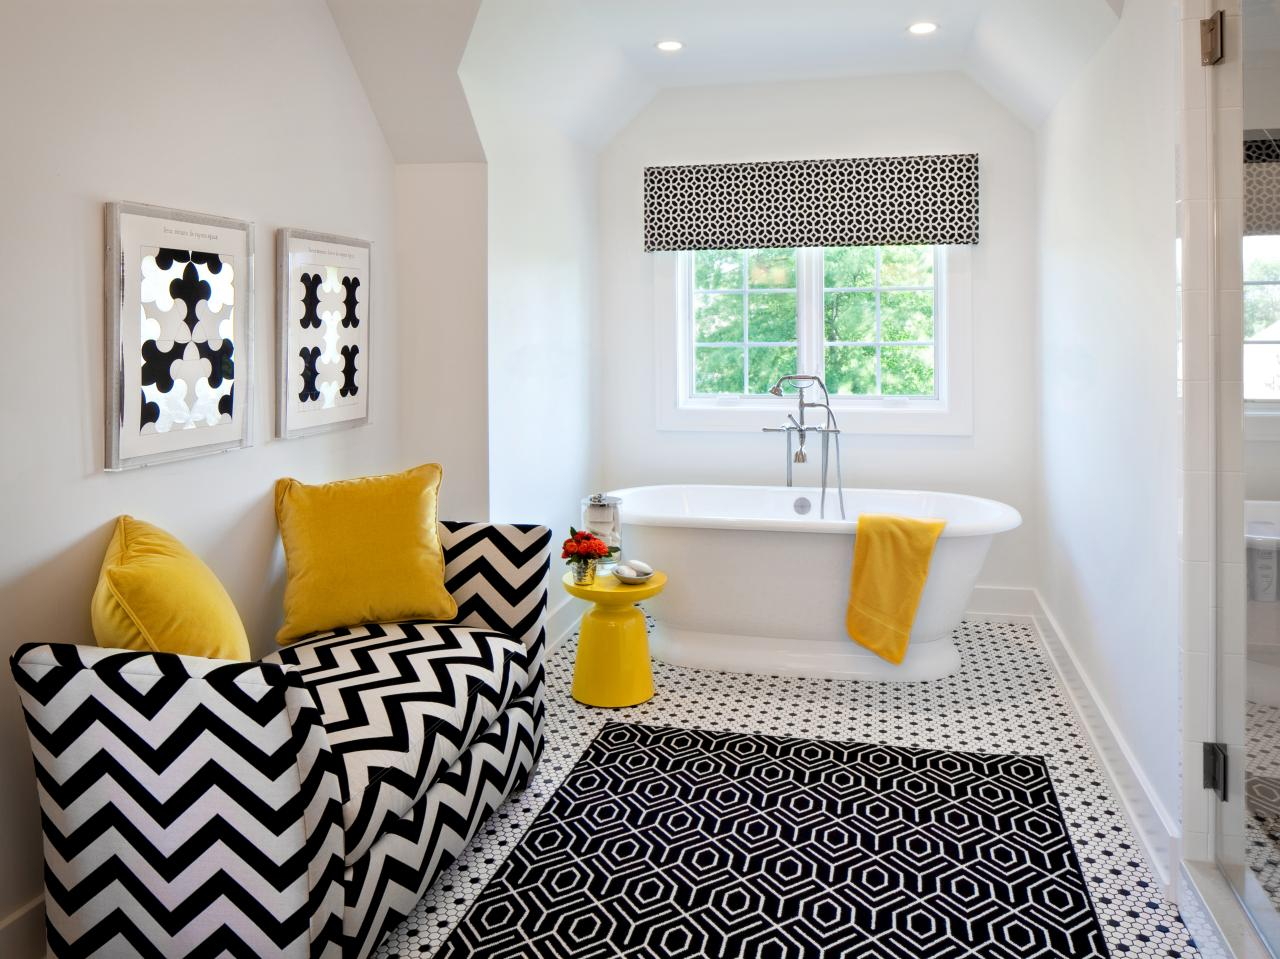 Black And White Bathroom Decor Ideas HGTV Pictures HGTV - Black and white bathrooms ideas